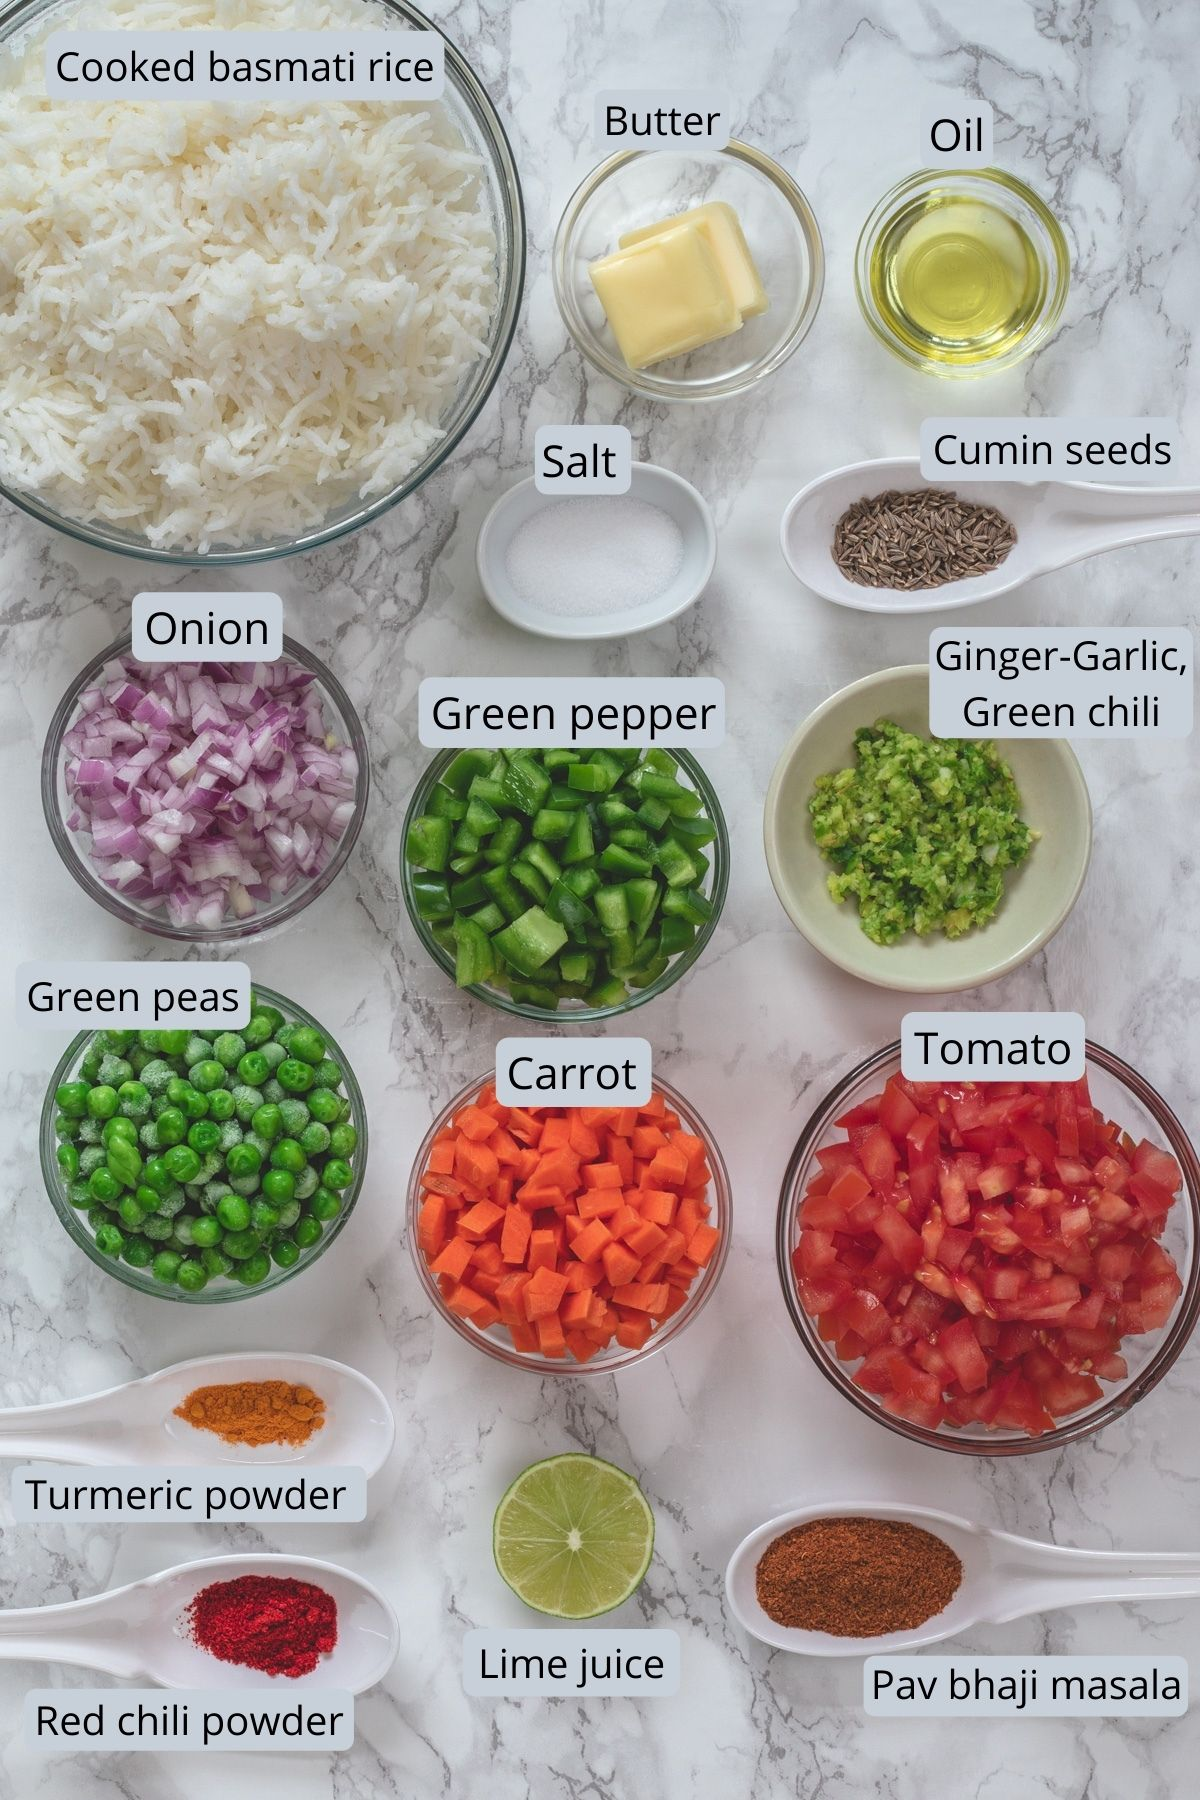 Ingredients used in tawa pulao recipe are in individual bowls and spoons.